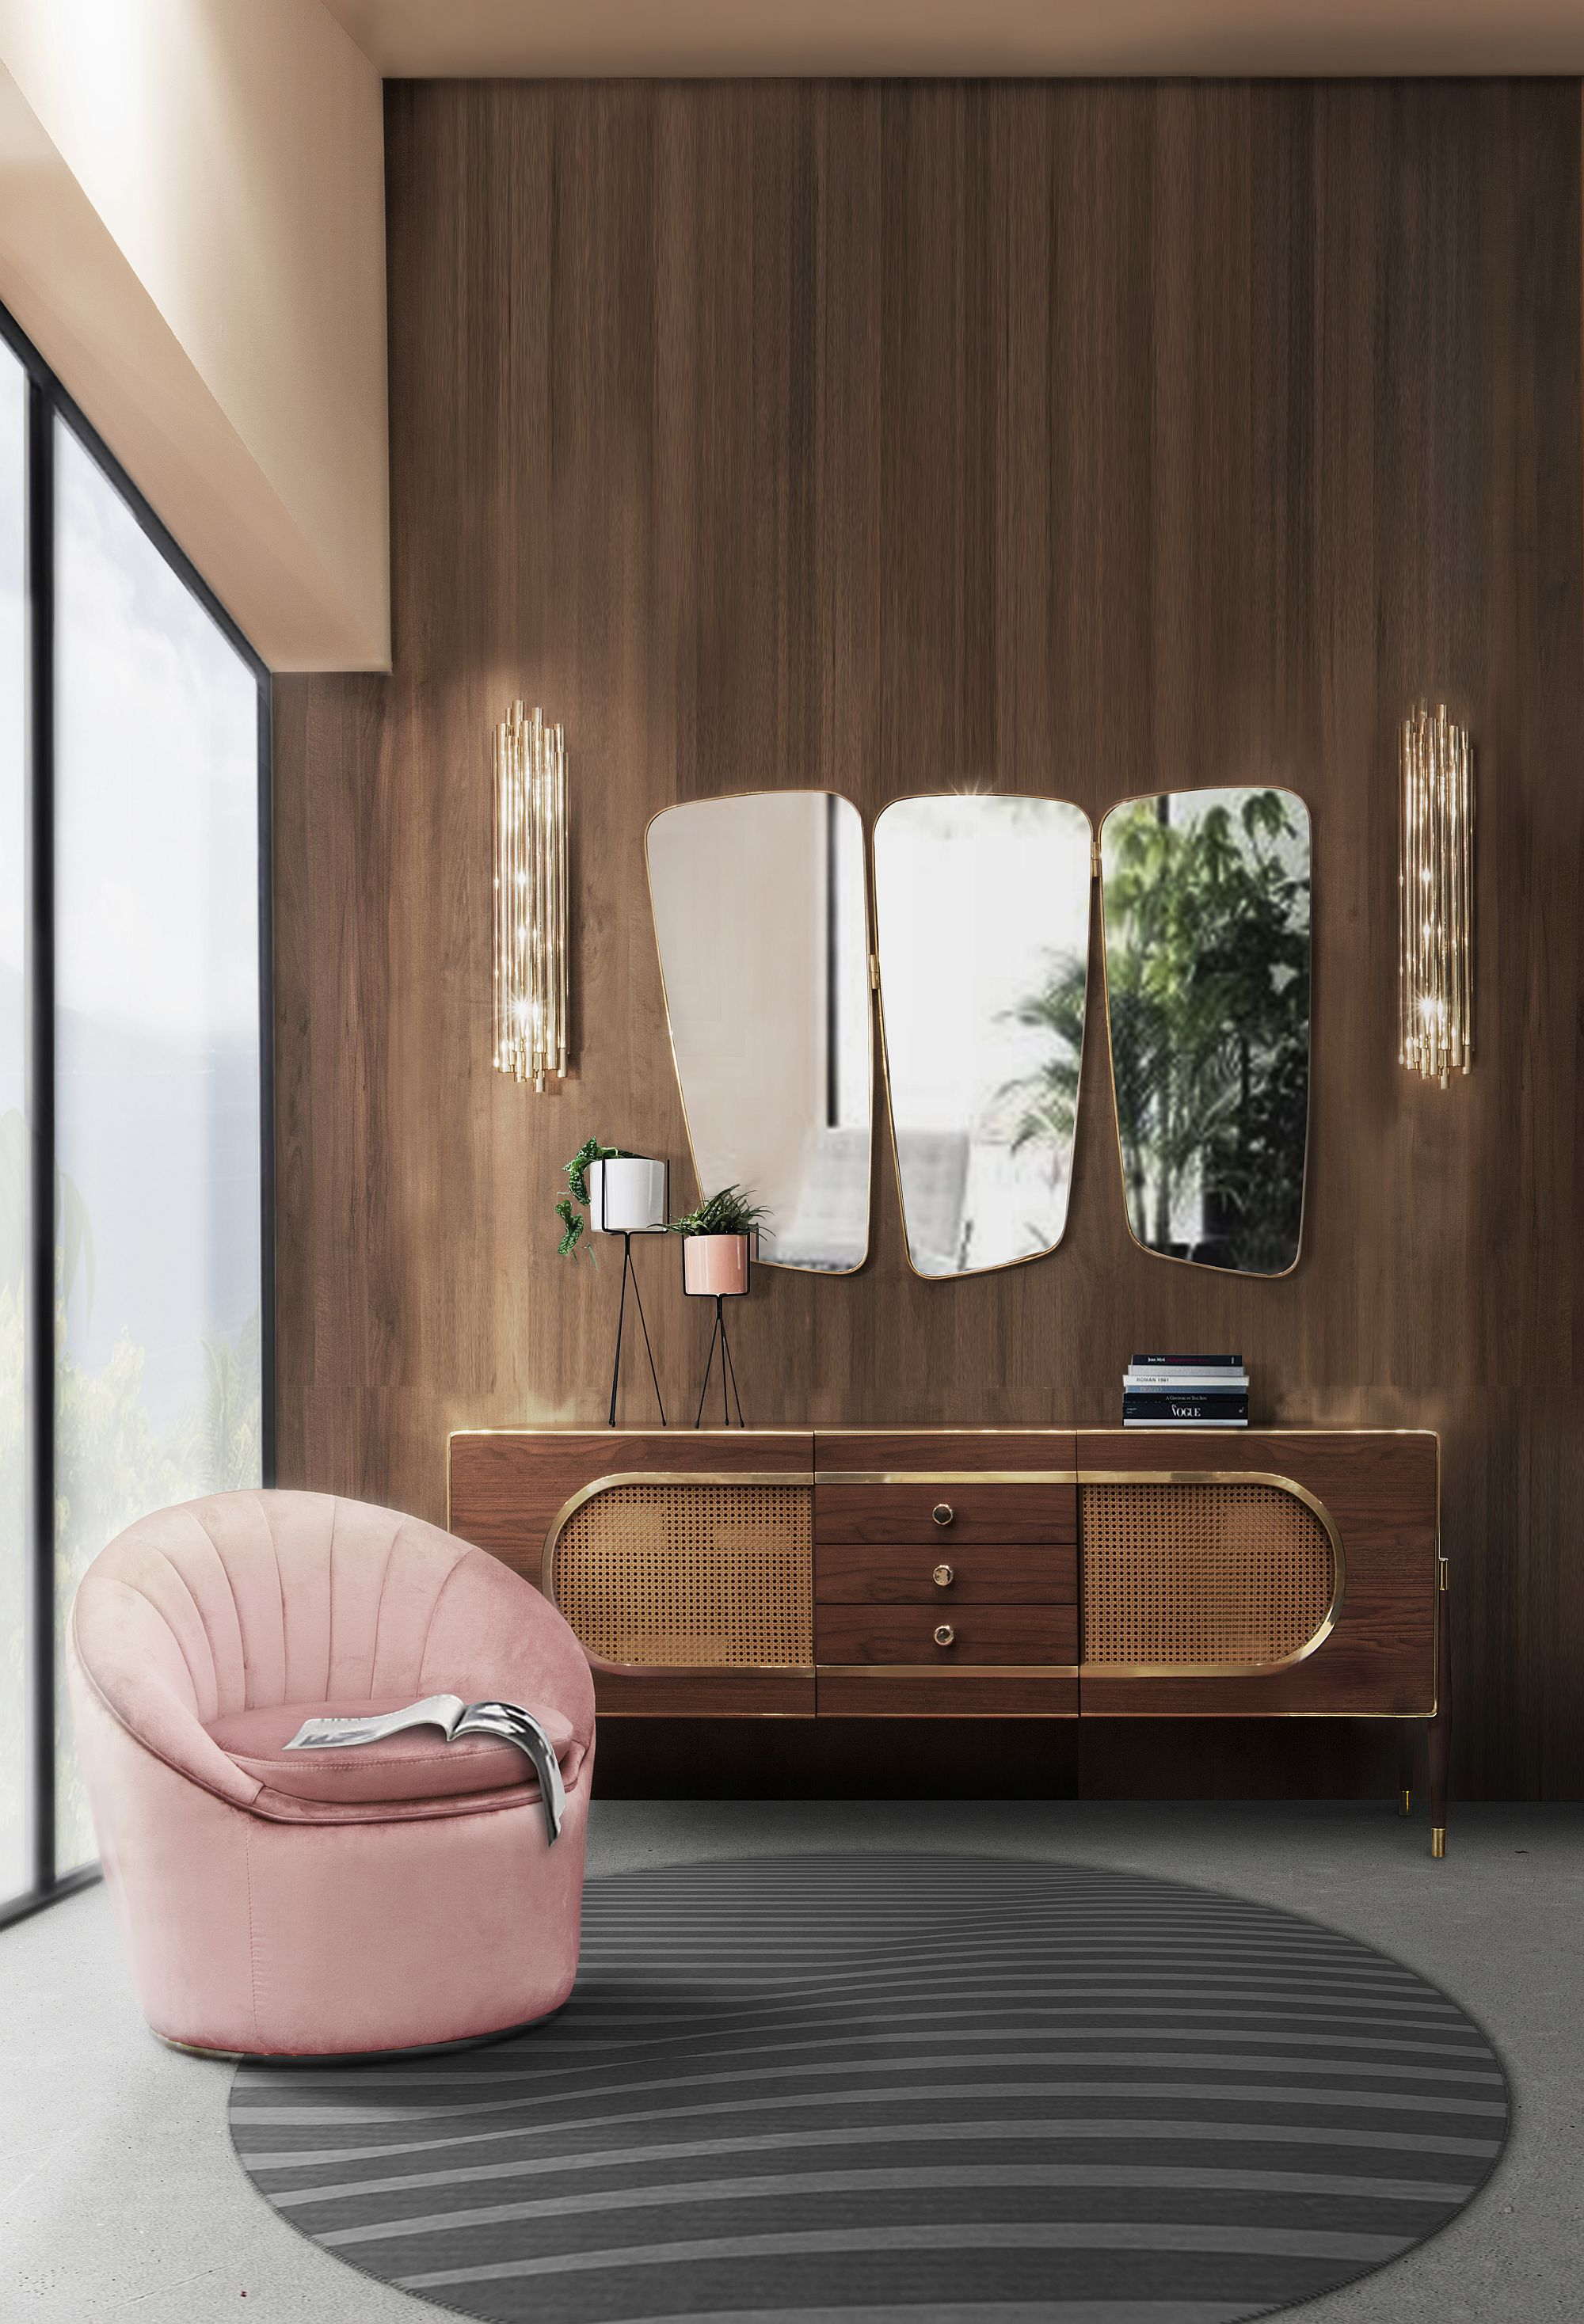 Plush arcmchair and classic sideboard for the midcentury home